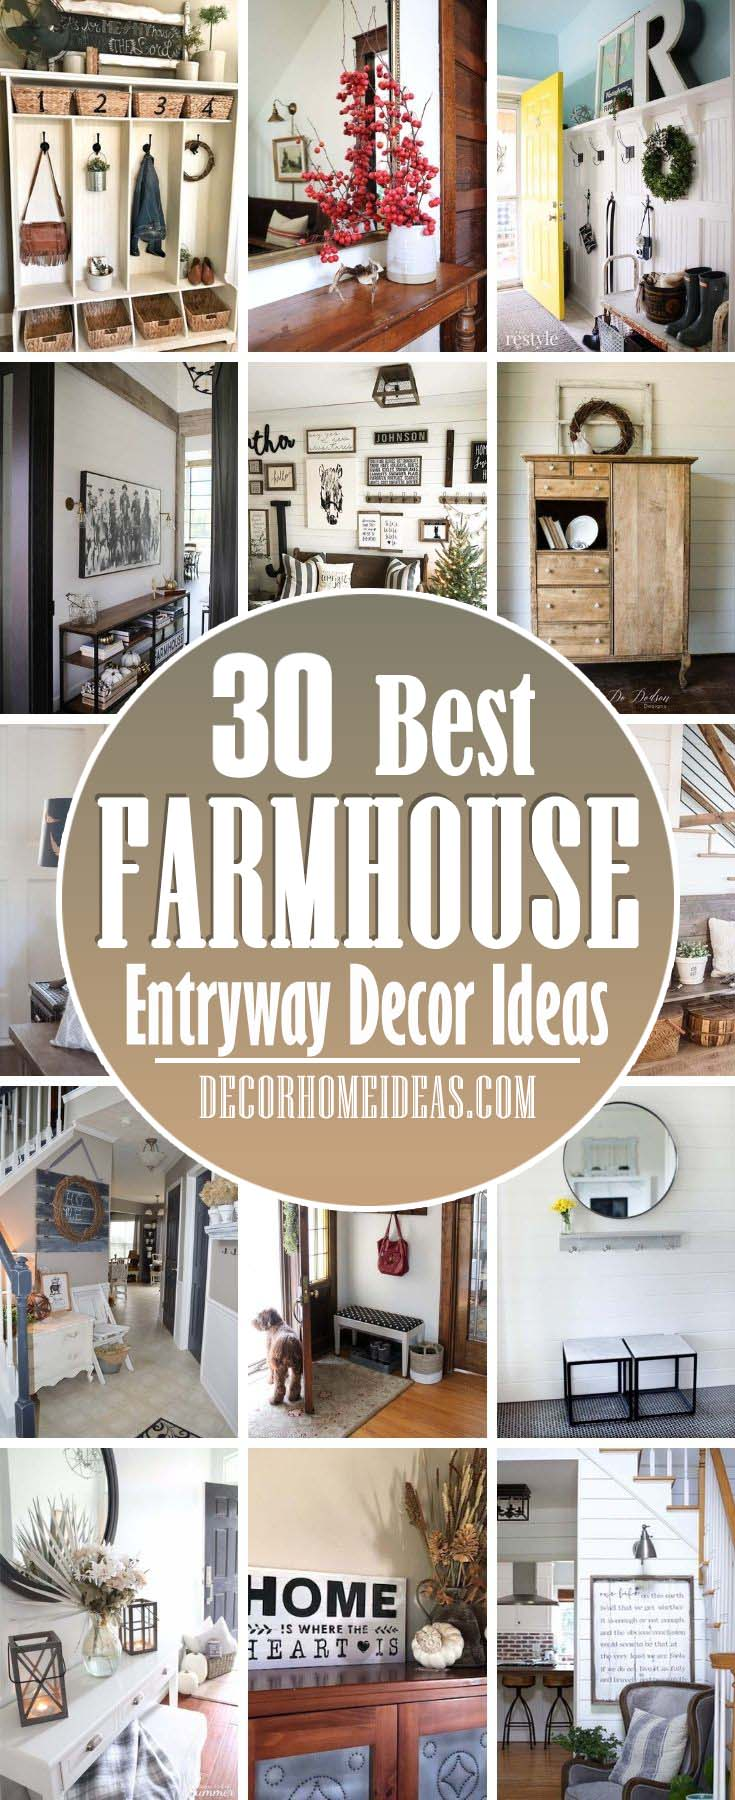 Best Farmhouse Entryway Decor Ideas. Get inspired by these warm and welcoming farmhouse entryway decorating ideas that will leave a lasting impression on your guests! #decorhomeideas